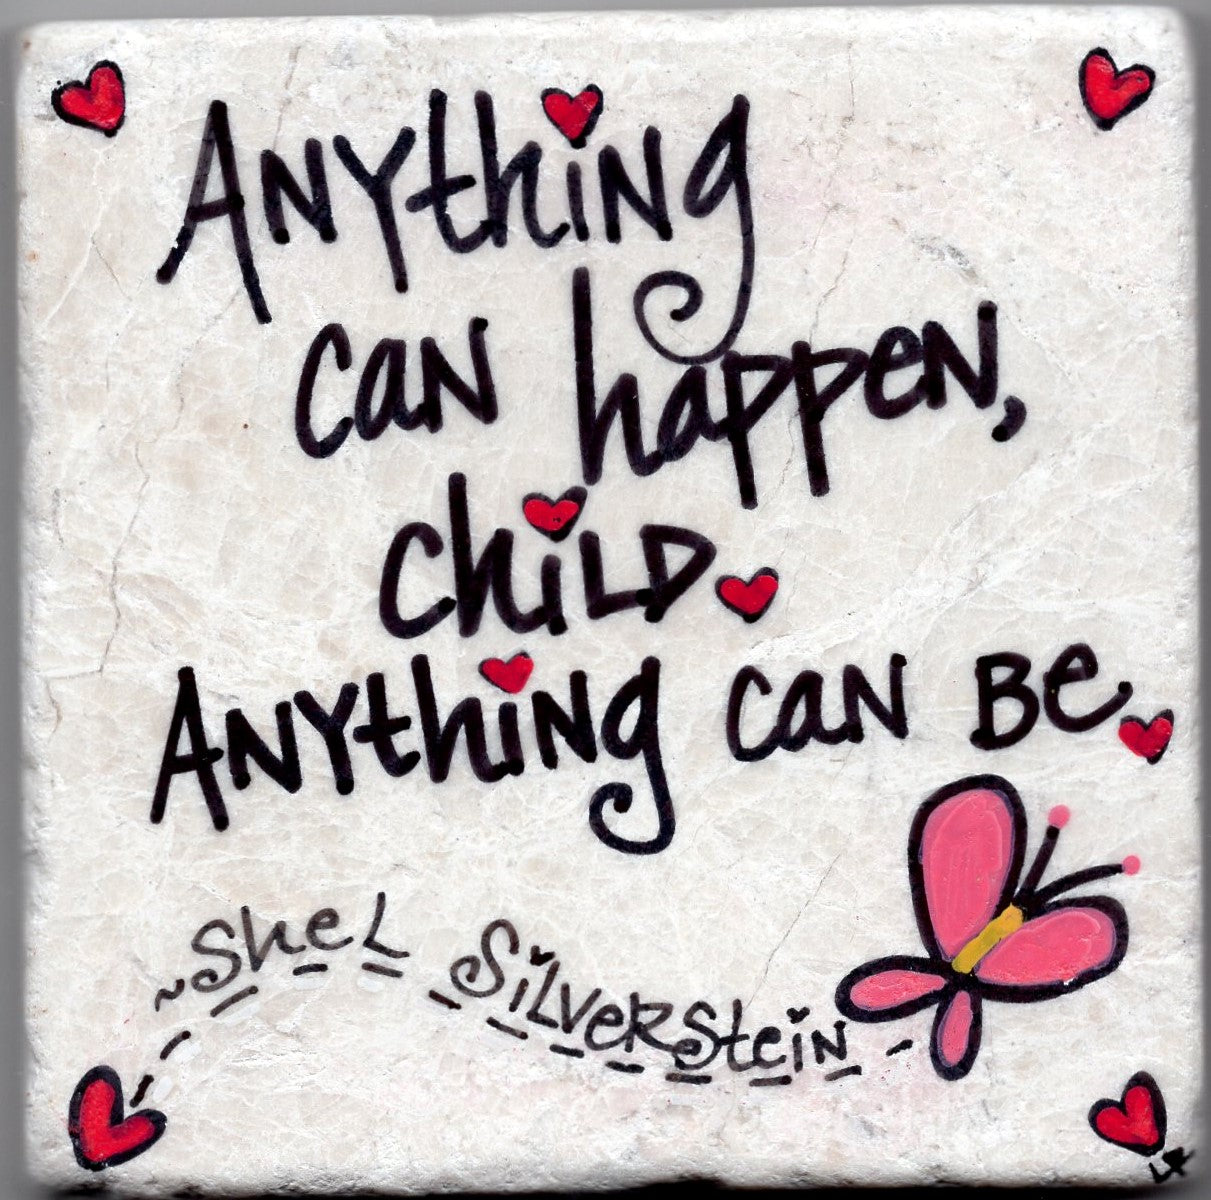 Care's Coasters - Anything Can Happen, Child